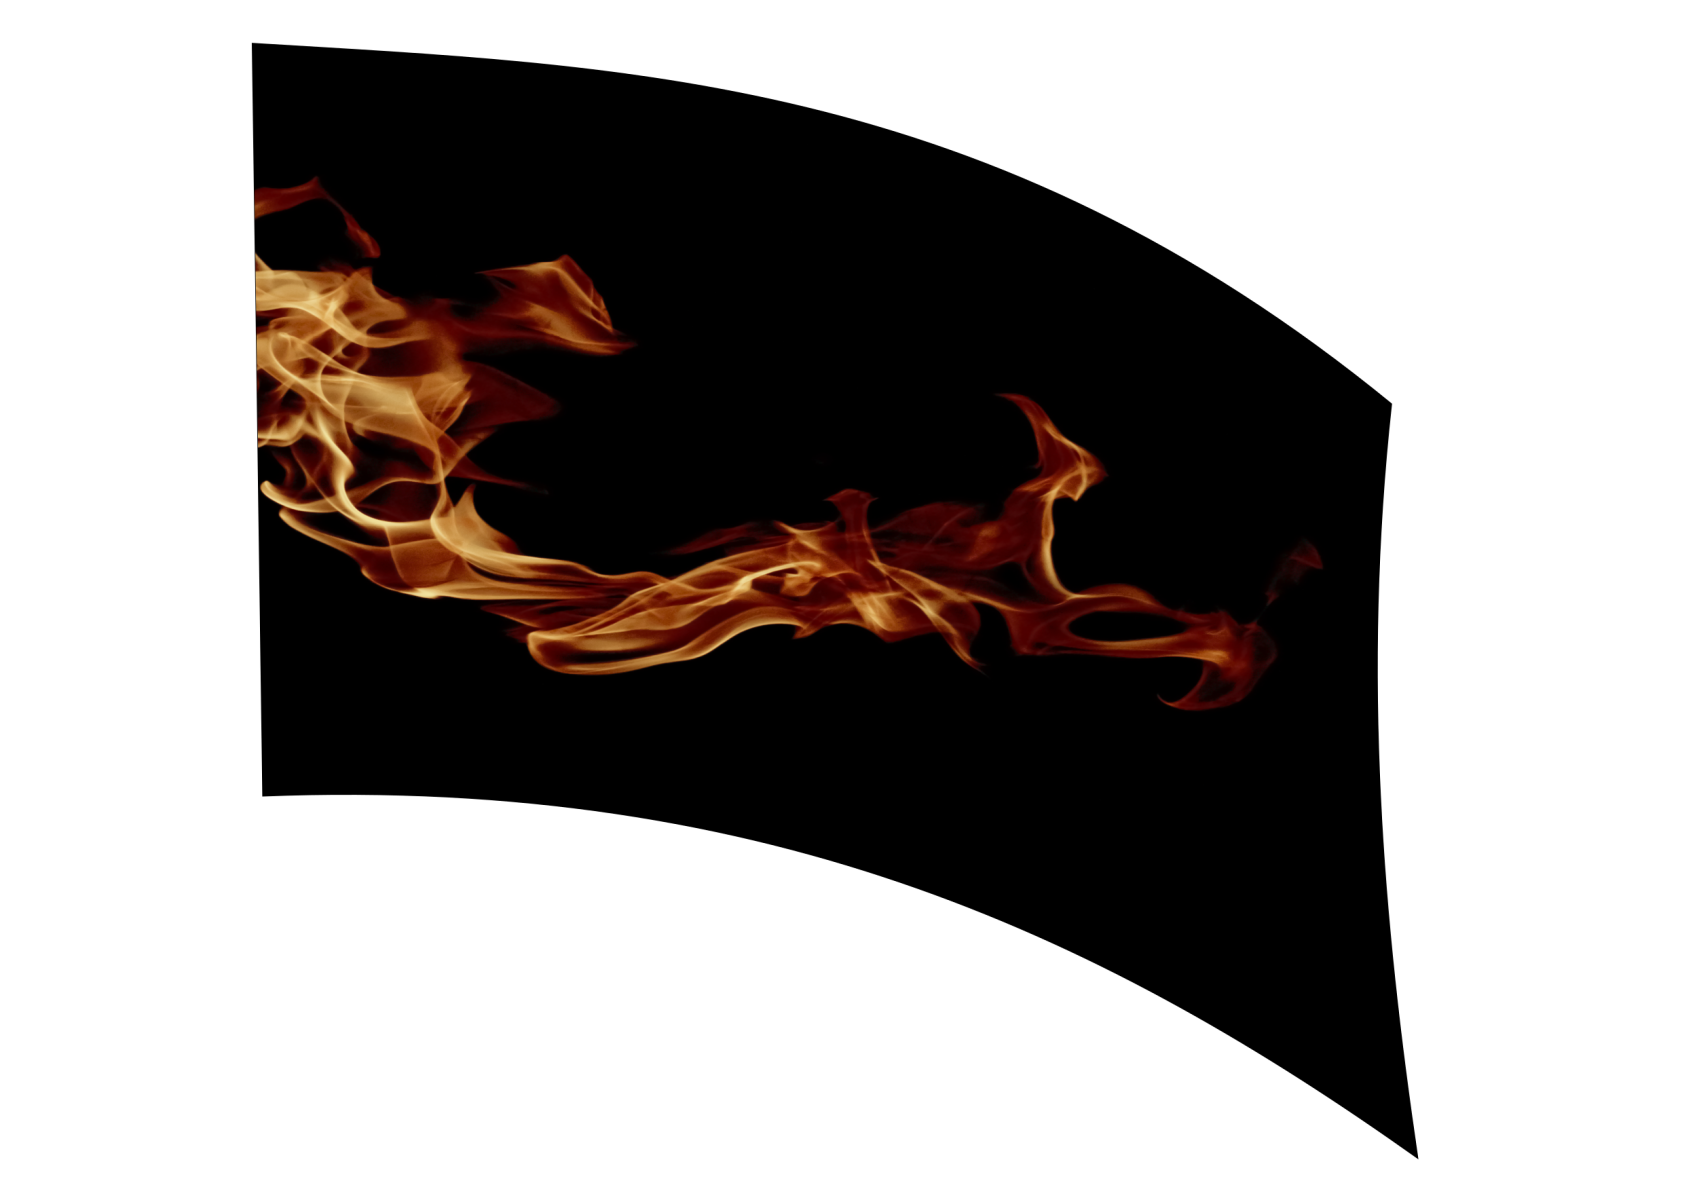 040105s - 36x54 Standard Realistic Flames 1